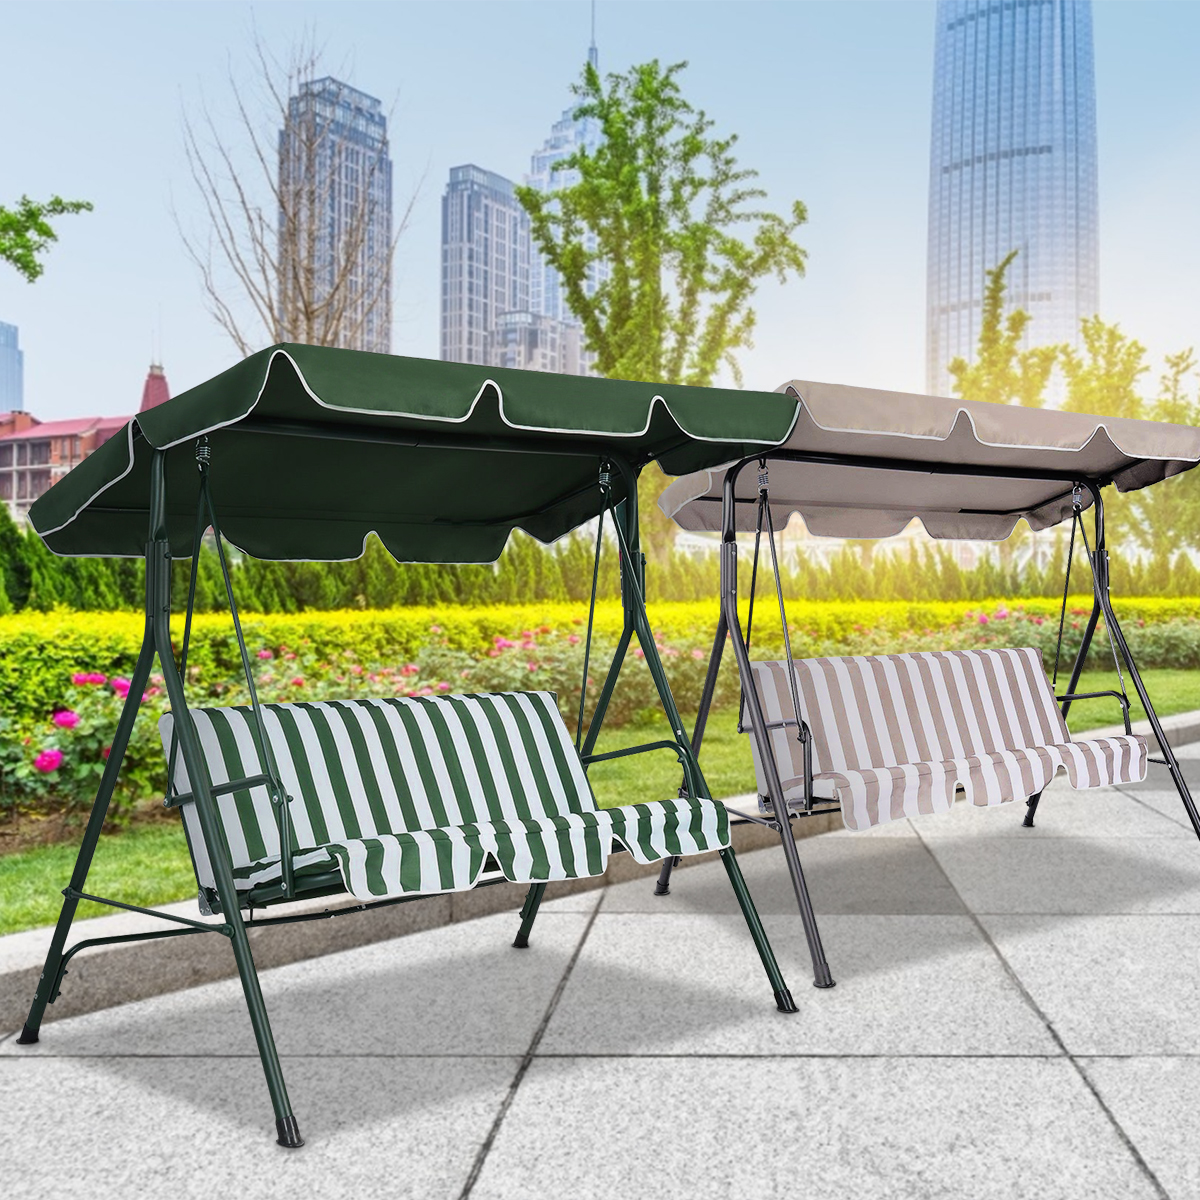 Swing-Top-Cover-Canopy-Replacement-Porch-Patio-Outdoor-66-034-x45-034-75-034-x52-034-77-034-x43-034 thumbnail 17